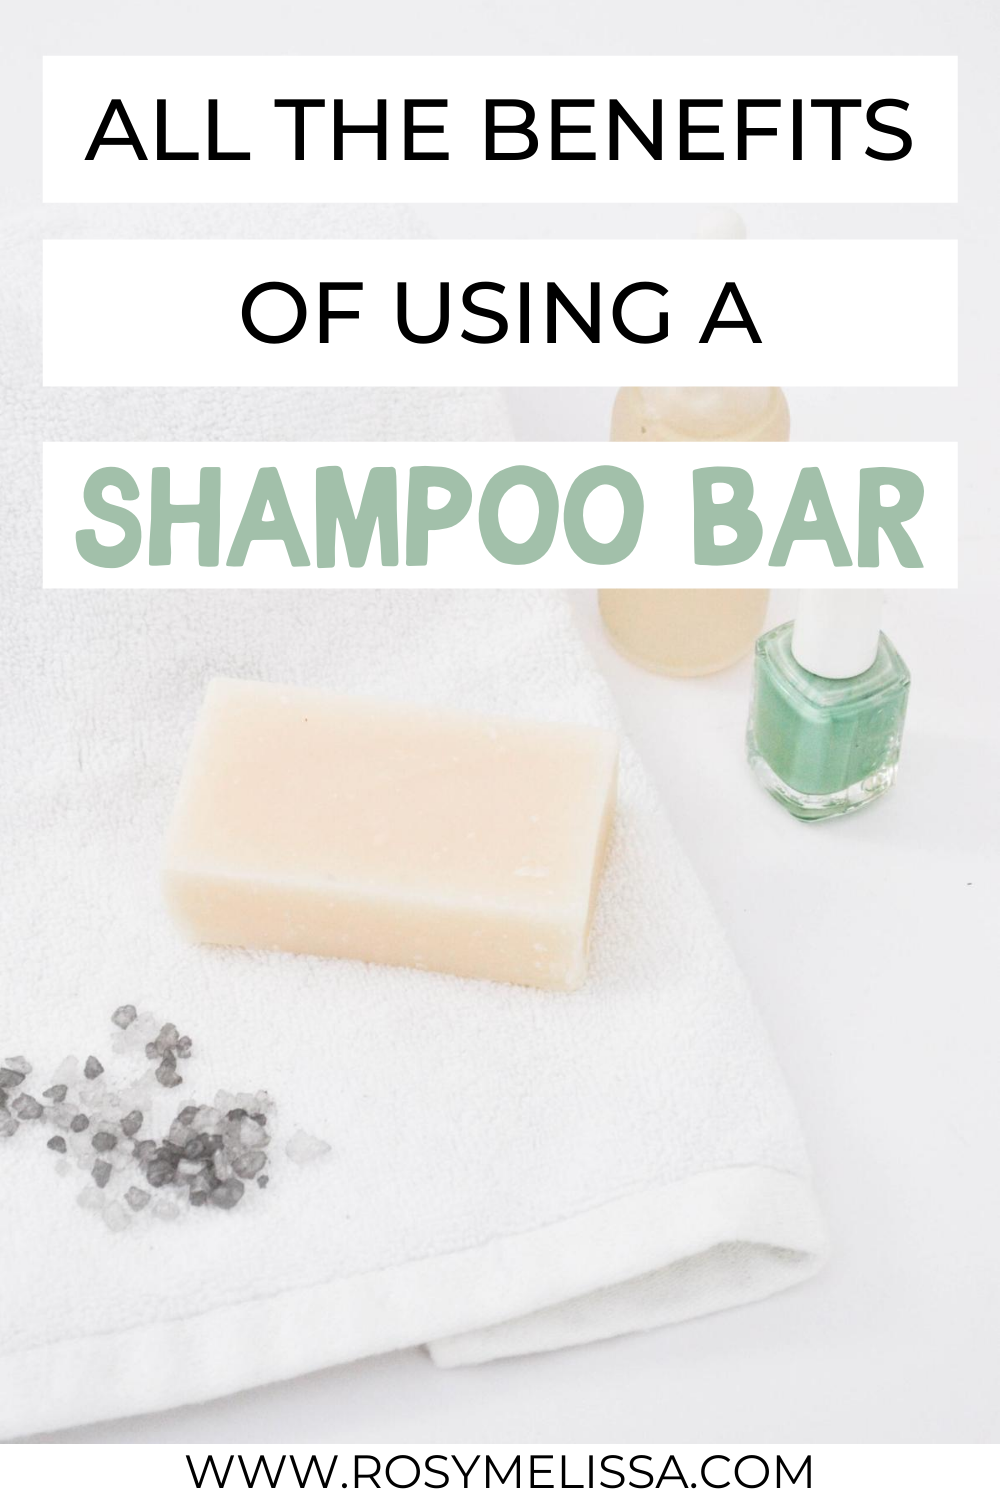 why use a shampoo bar, reasons to switch to shampoo bars, how to use shampoo bars and where to buy shampoo bars, benefits of using shampoo bars